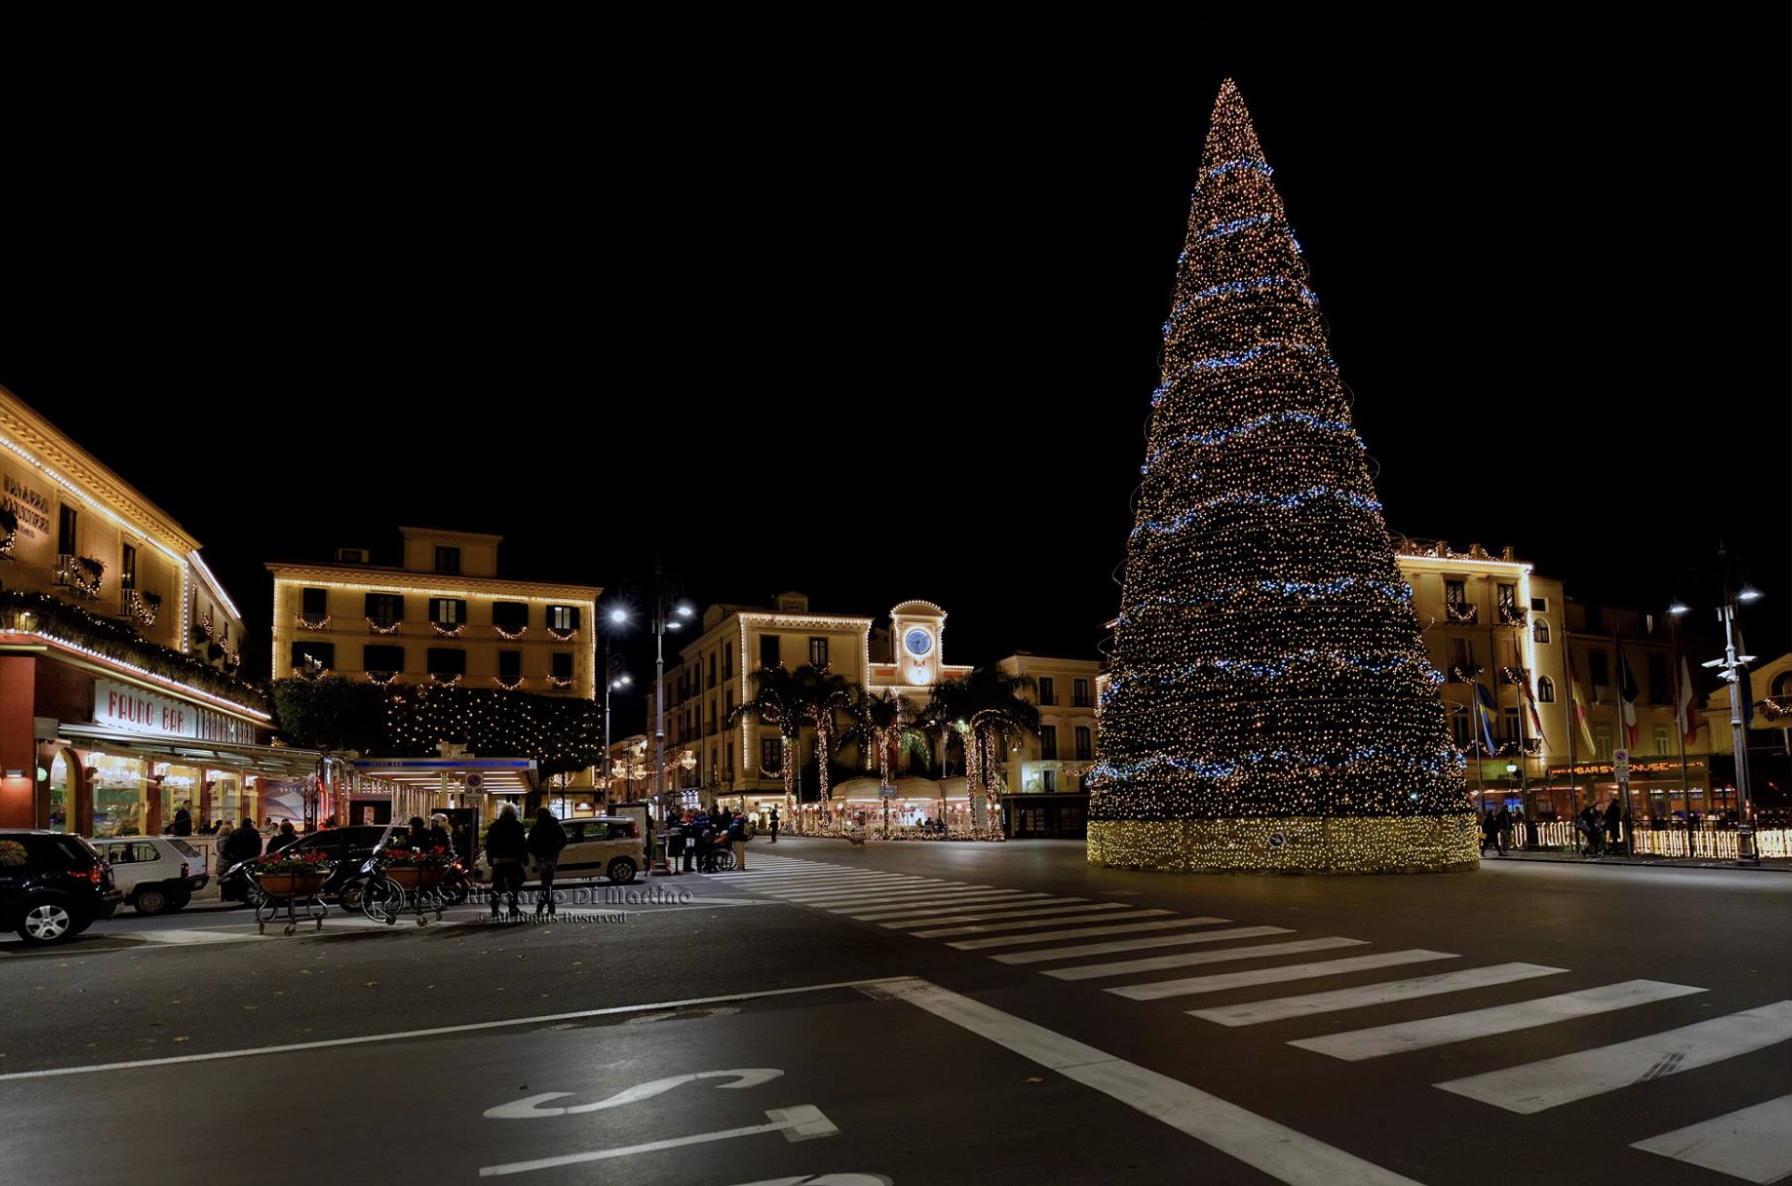 Christmas lights in Sorrento, Piazza Tasso